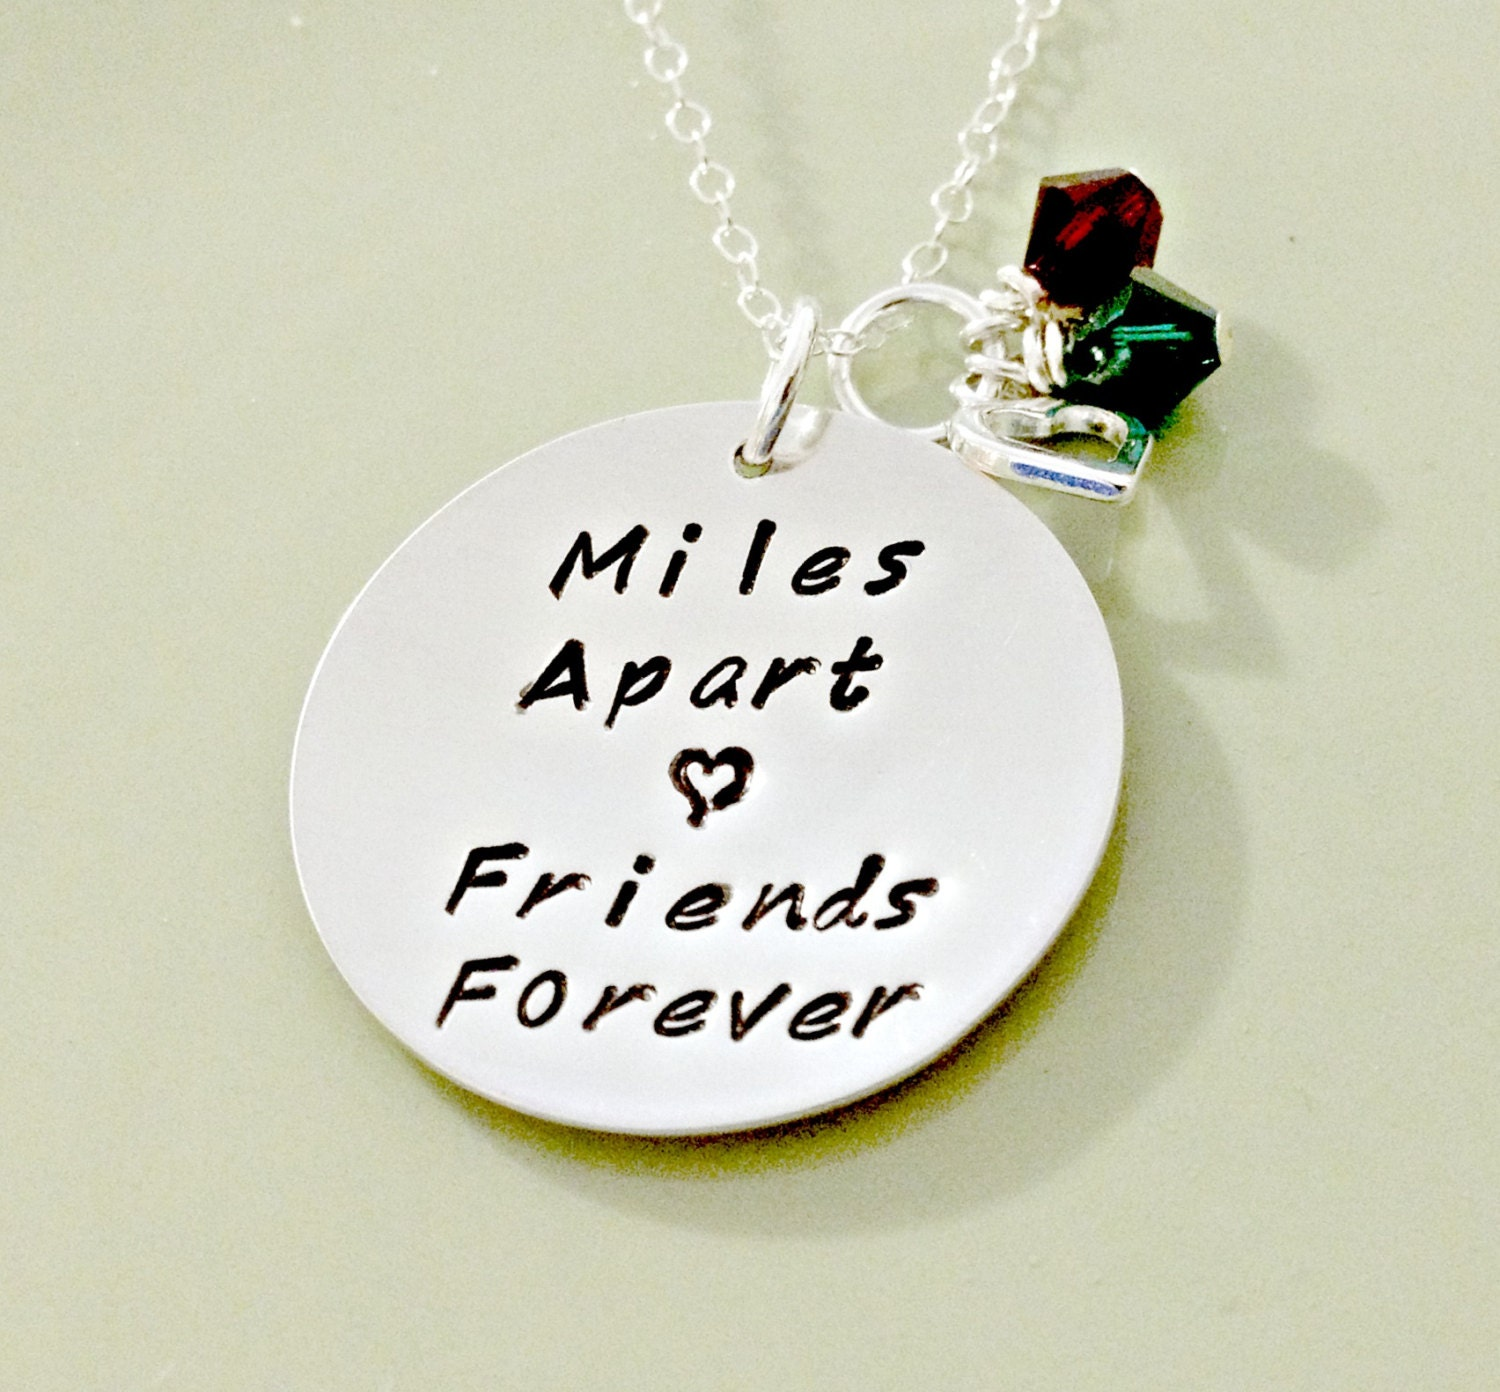 happy valentines day bff meme - Miles Apart Friends Forever Personalized Hand Stamped